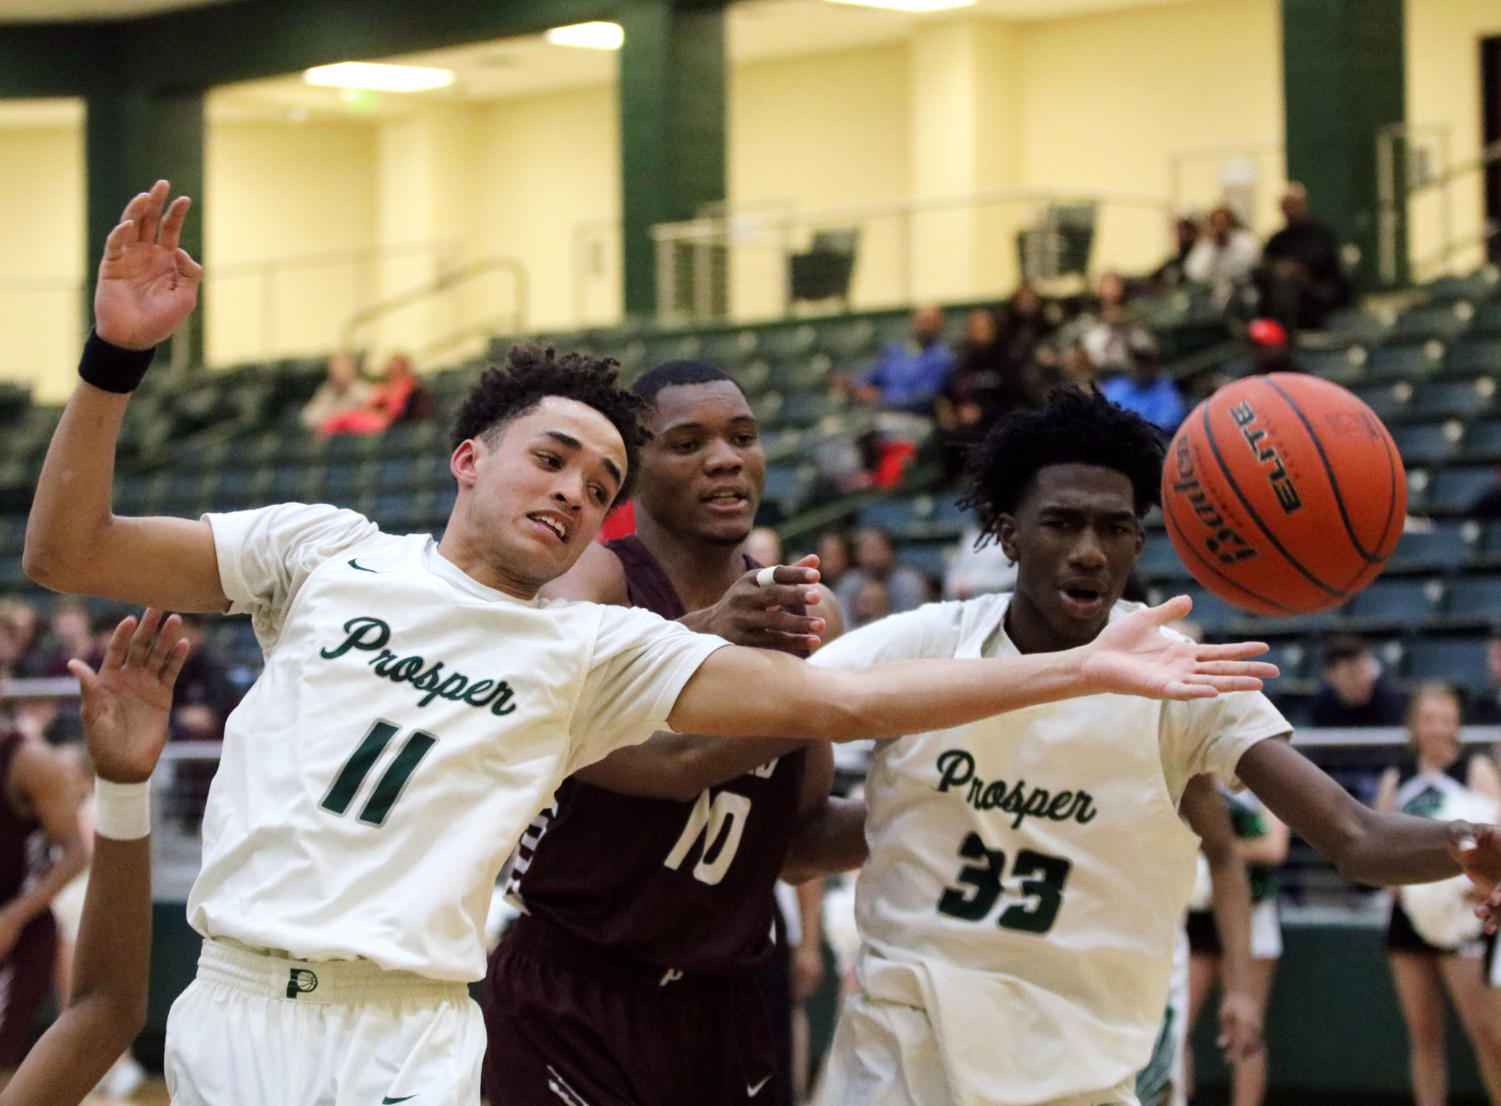 Senior Josh Davis, No. 11, and Sophomore Luke Chancey, No. 33, block the ball from Plano Senior opponent Senior Stanley Joseph,  No. 10, in  the center. Both Eagles' efforts helped Prosper win 57-53. Prosper will face off against McKinney High and Plano East this week.